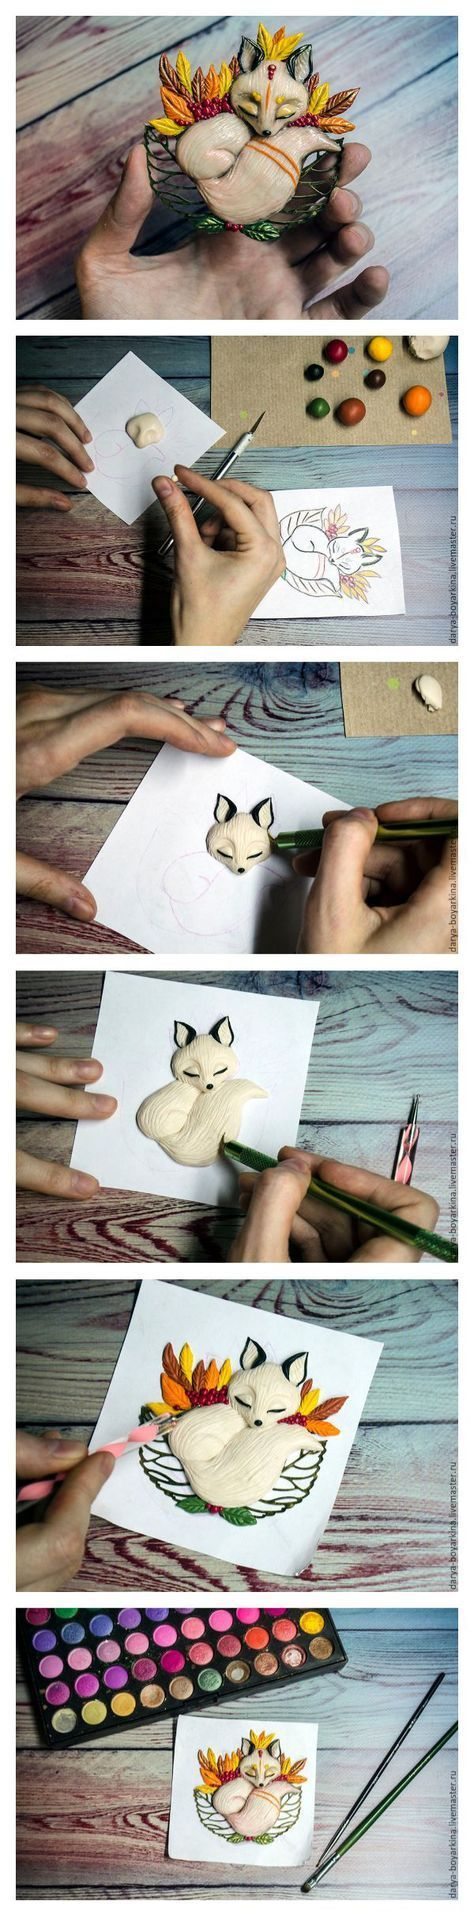 Good idea would be to paint on top of tracing paper, replicating a drawing